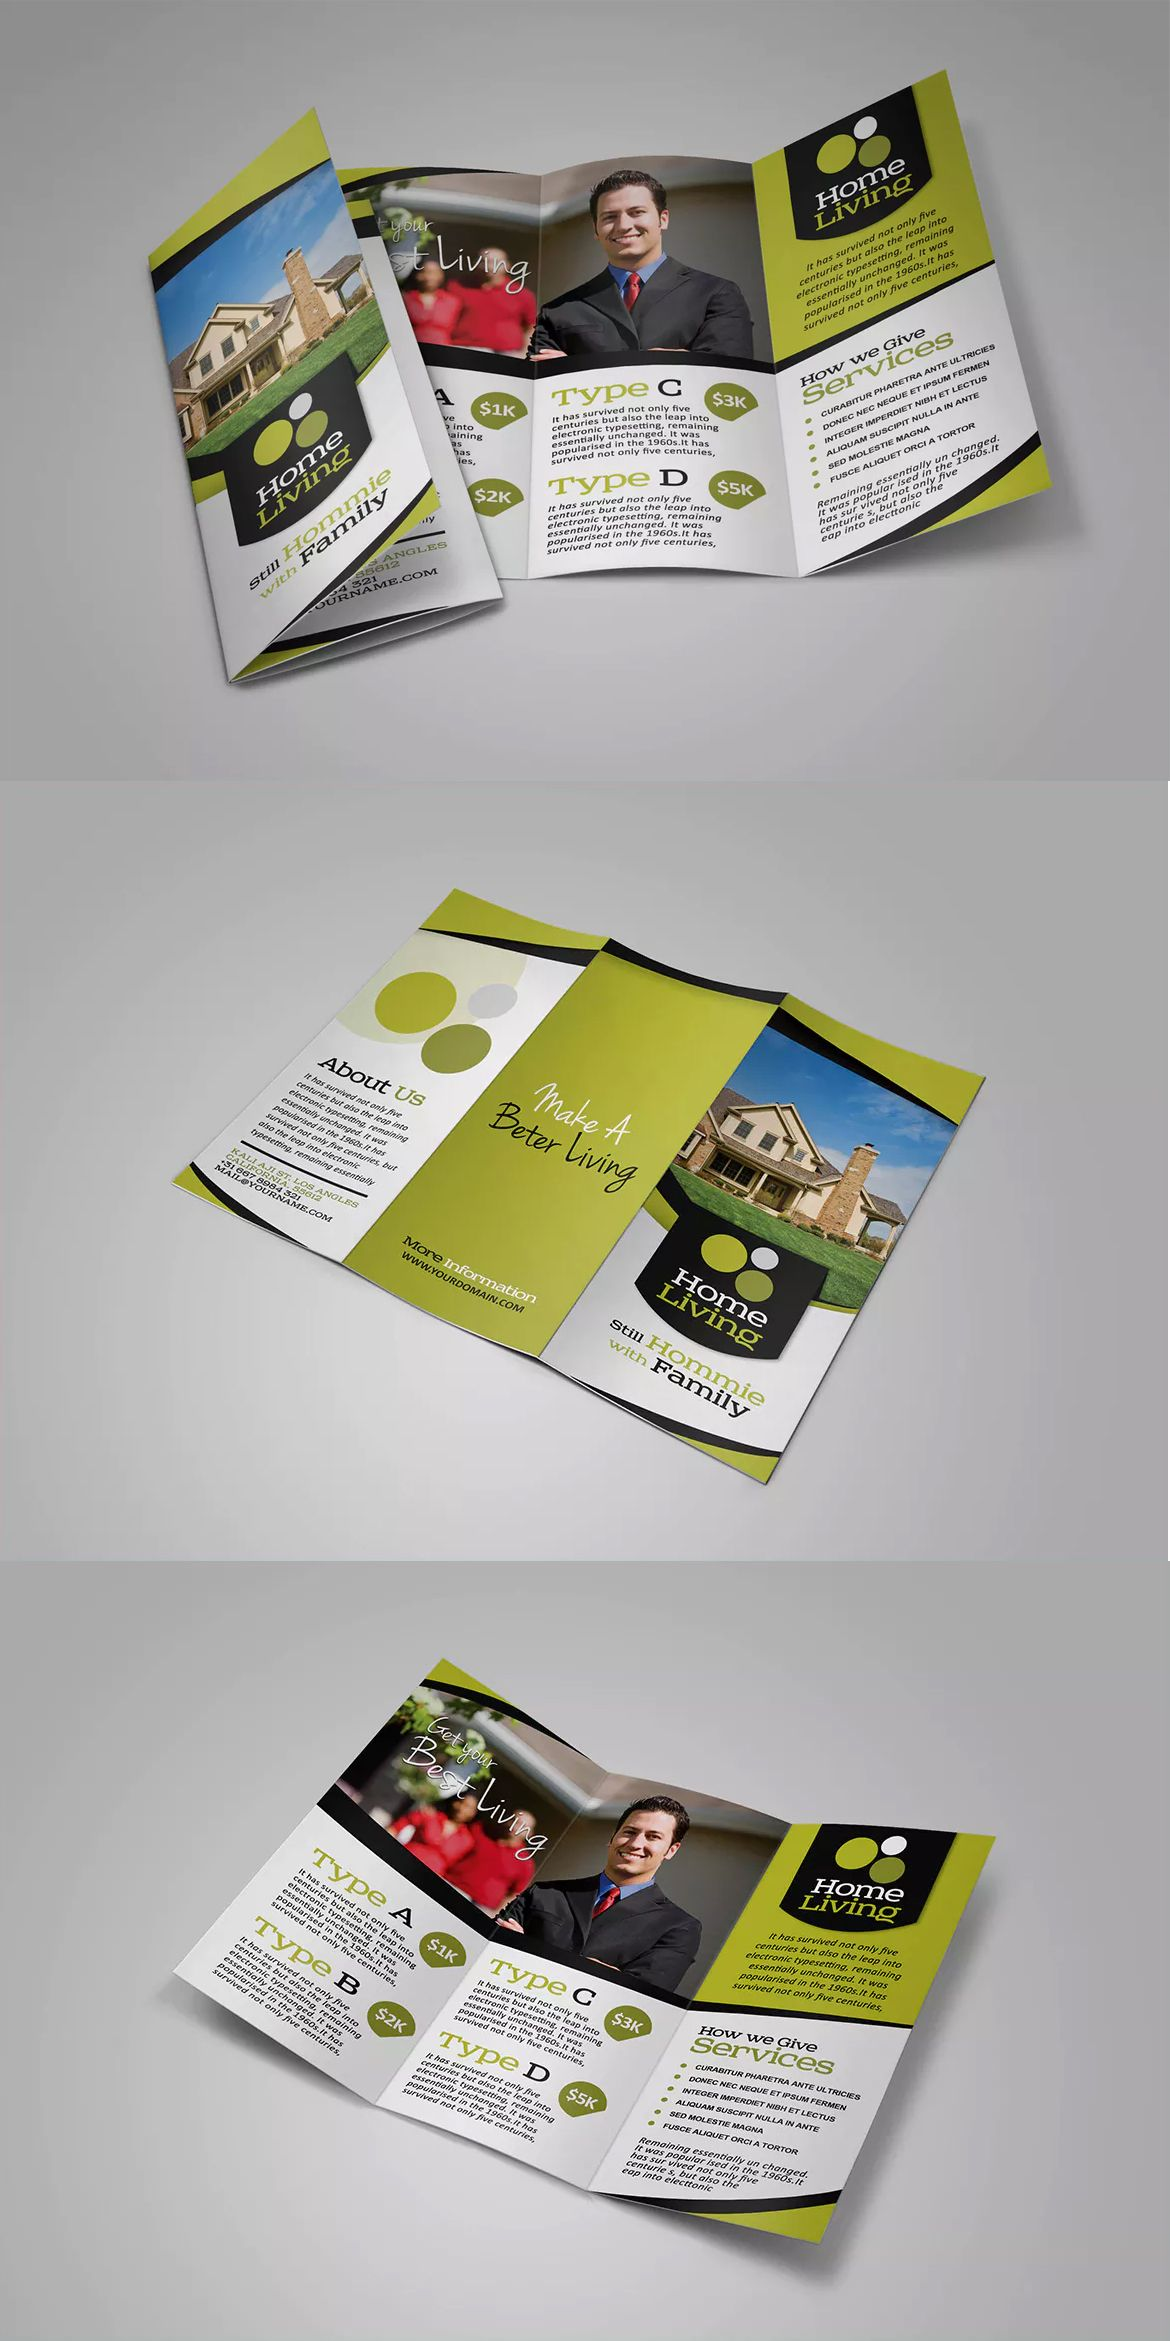 Living Real Estate Brochure Template PSD   PRINT Designs   Pinterest     Living Real Estate Brochure Template PSD